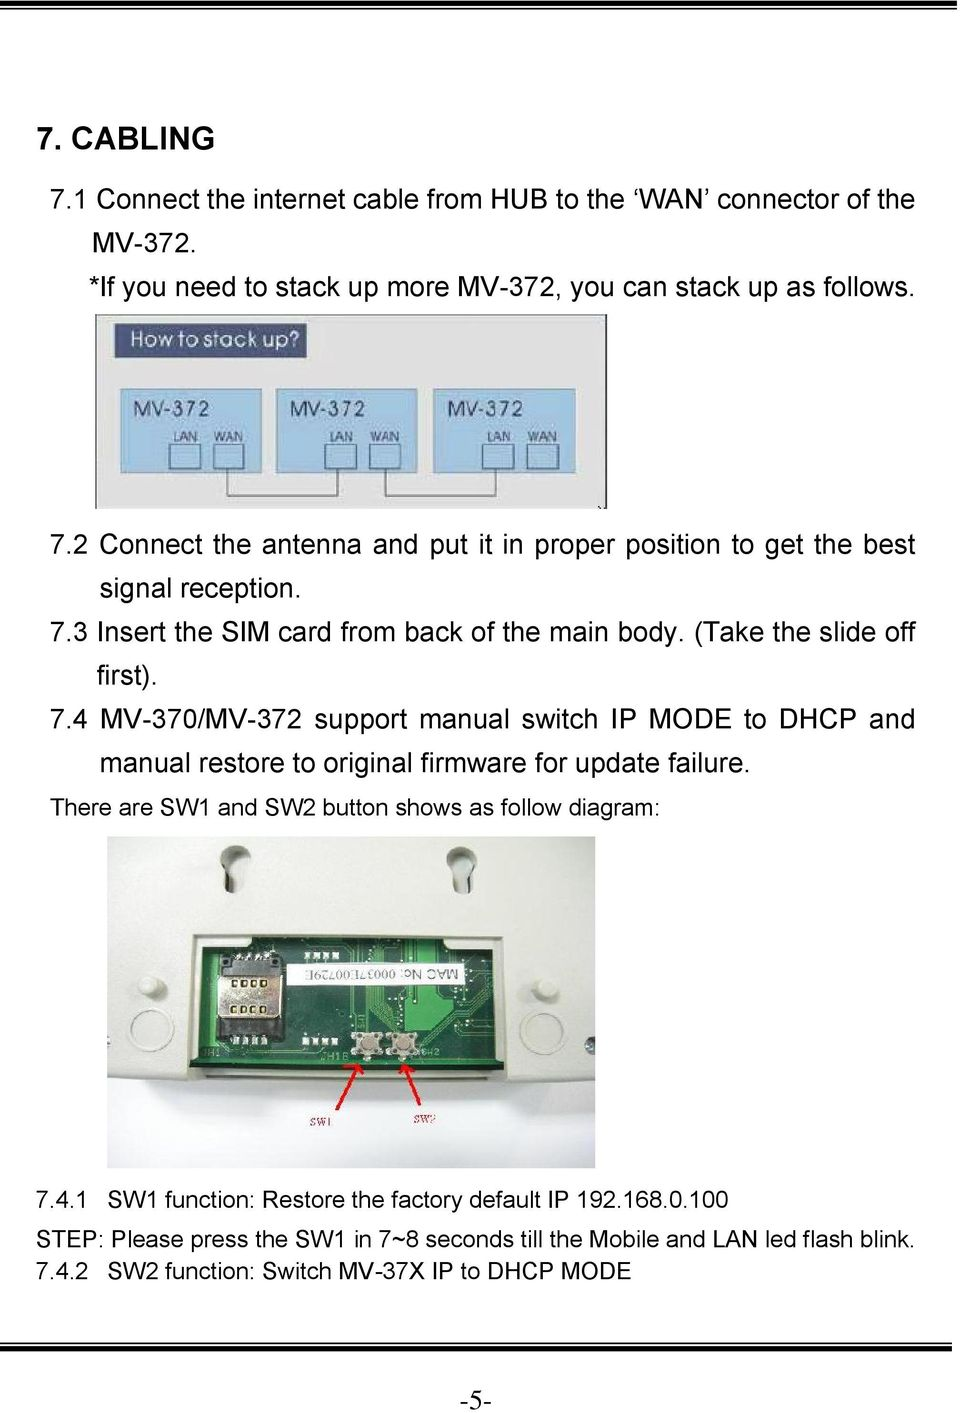 4 MV-370/MV-372 support manual switch IP MODE to DHCP and manual restore to original firmware for update failure. There are SW1 and SW2 button shows as follow diagram: 7.4.1 SW1 function: Restore the factory default IP 192.